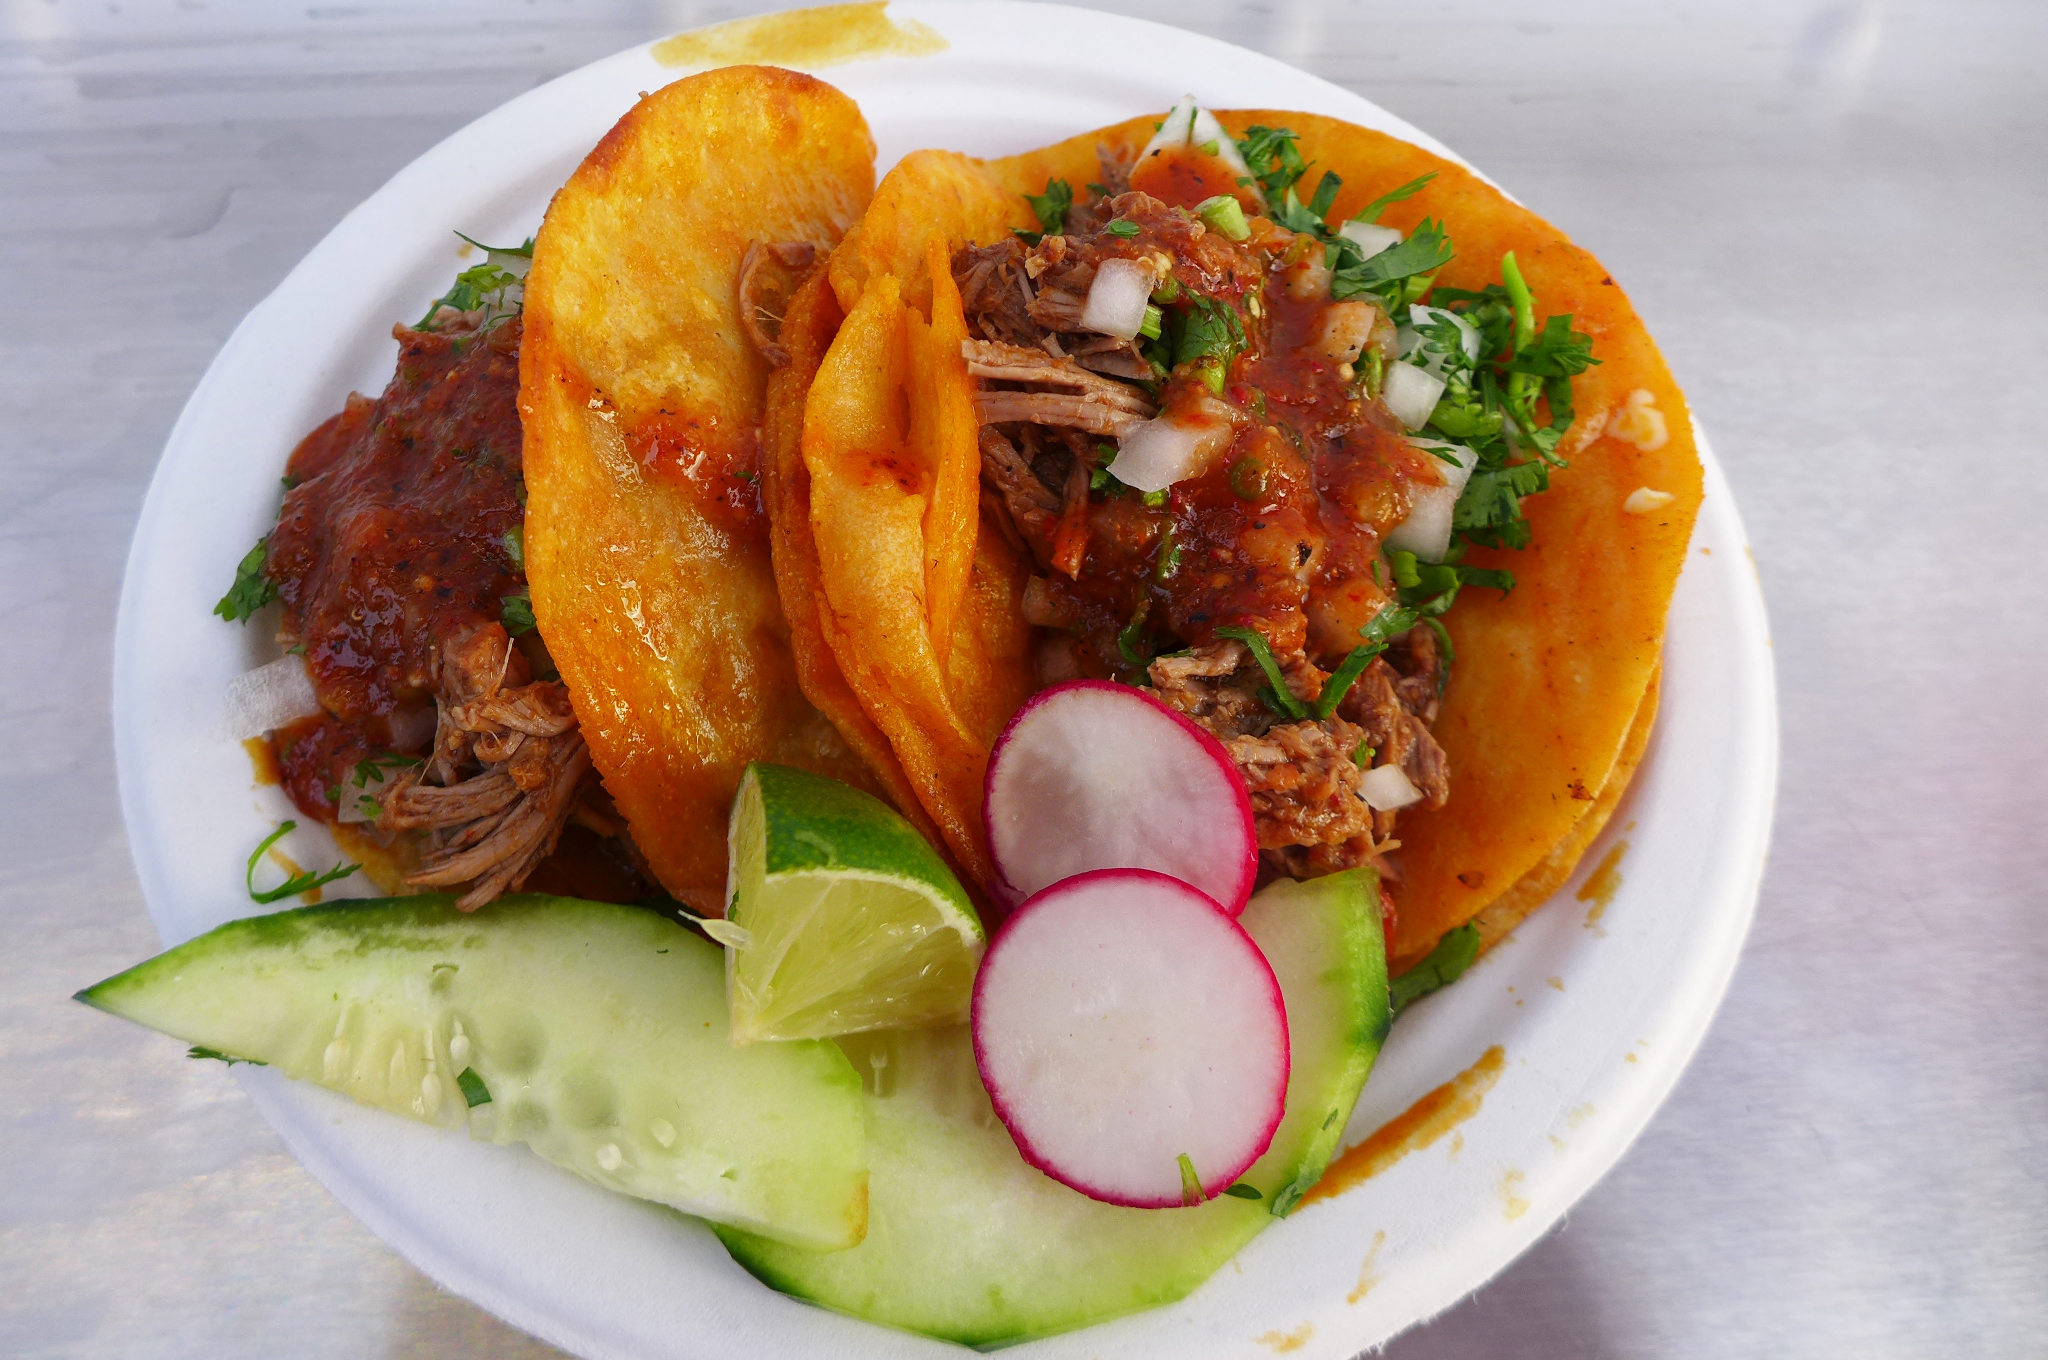 A pair of tacosstuffed with meat, green cilantro, and onions, served with sliced radishes and cucumbers